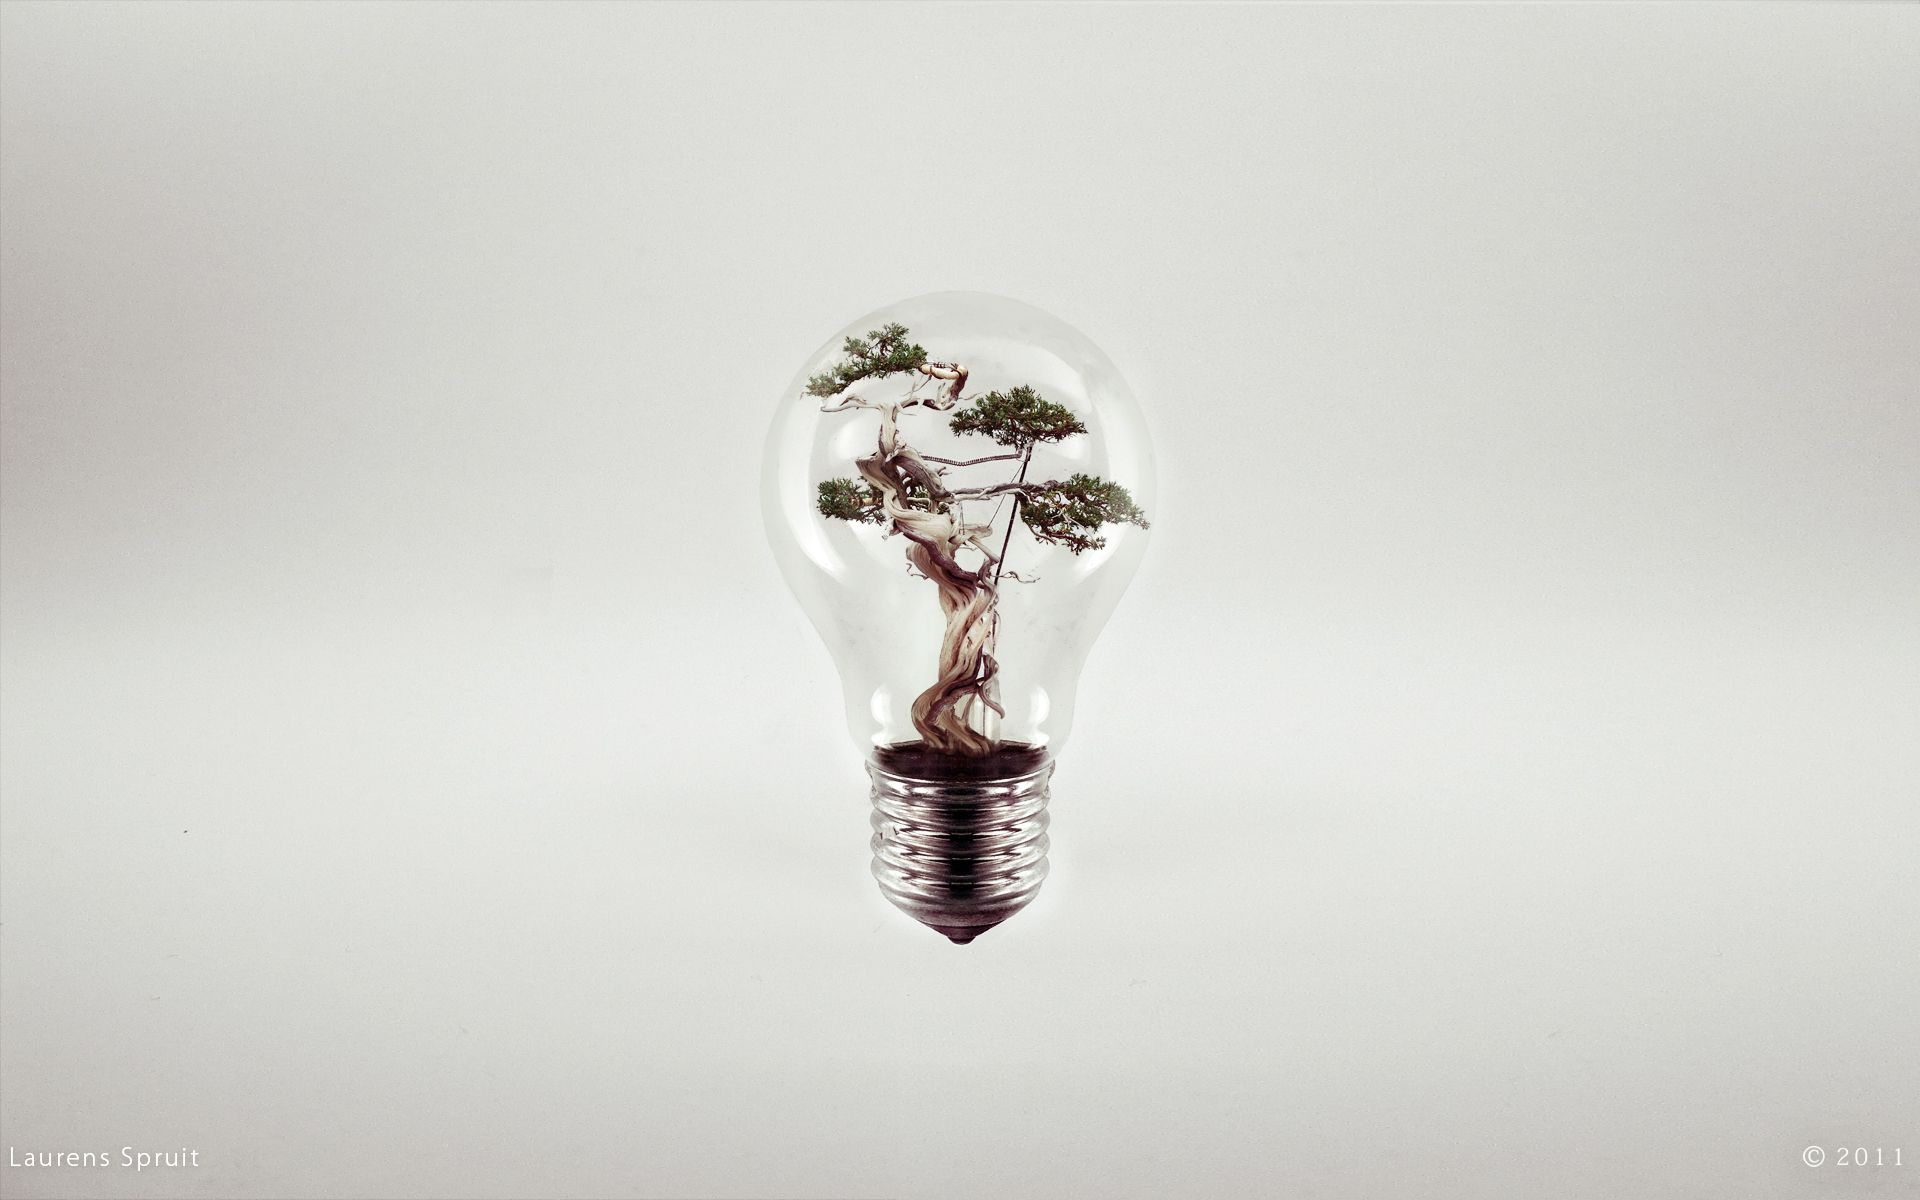 1000 images about lightbulb things on pinterest lightbulbs bulbs - Lit Bulb Wallpaper Wallpaper Free Download